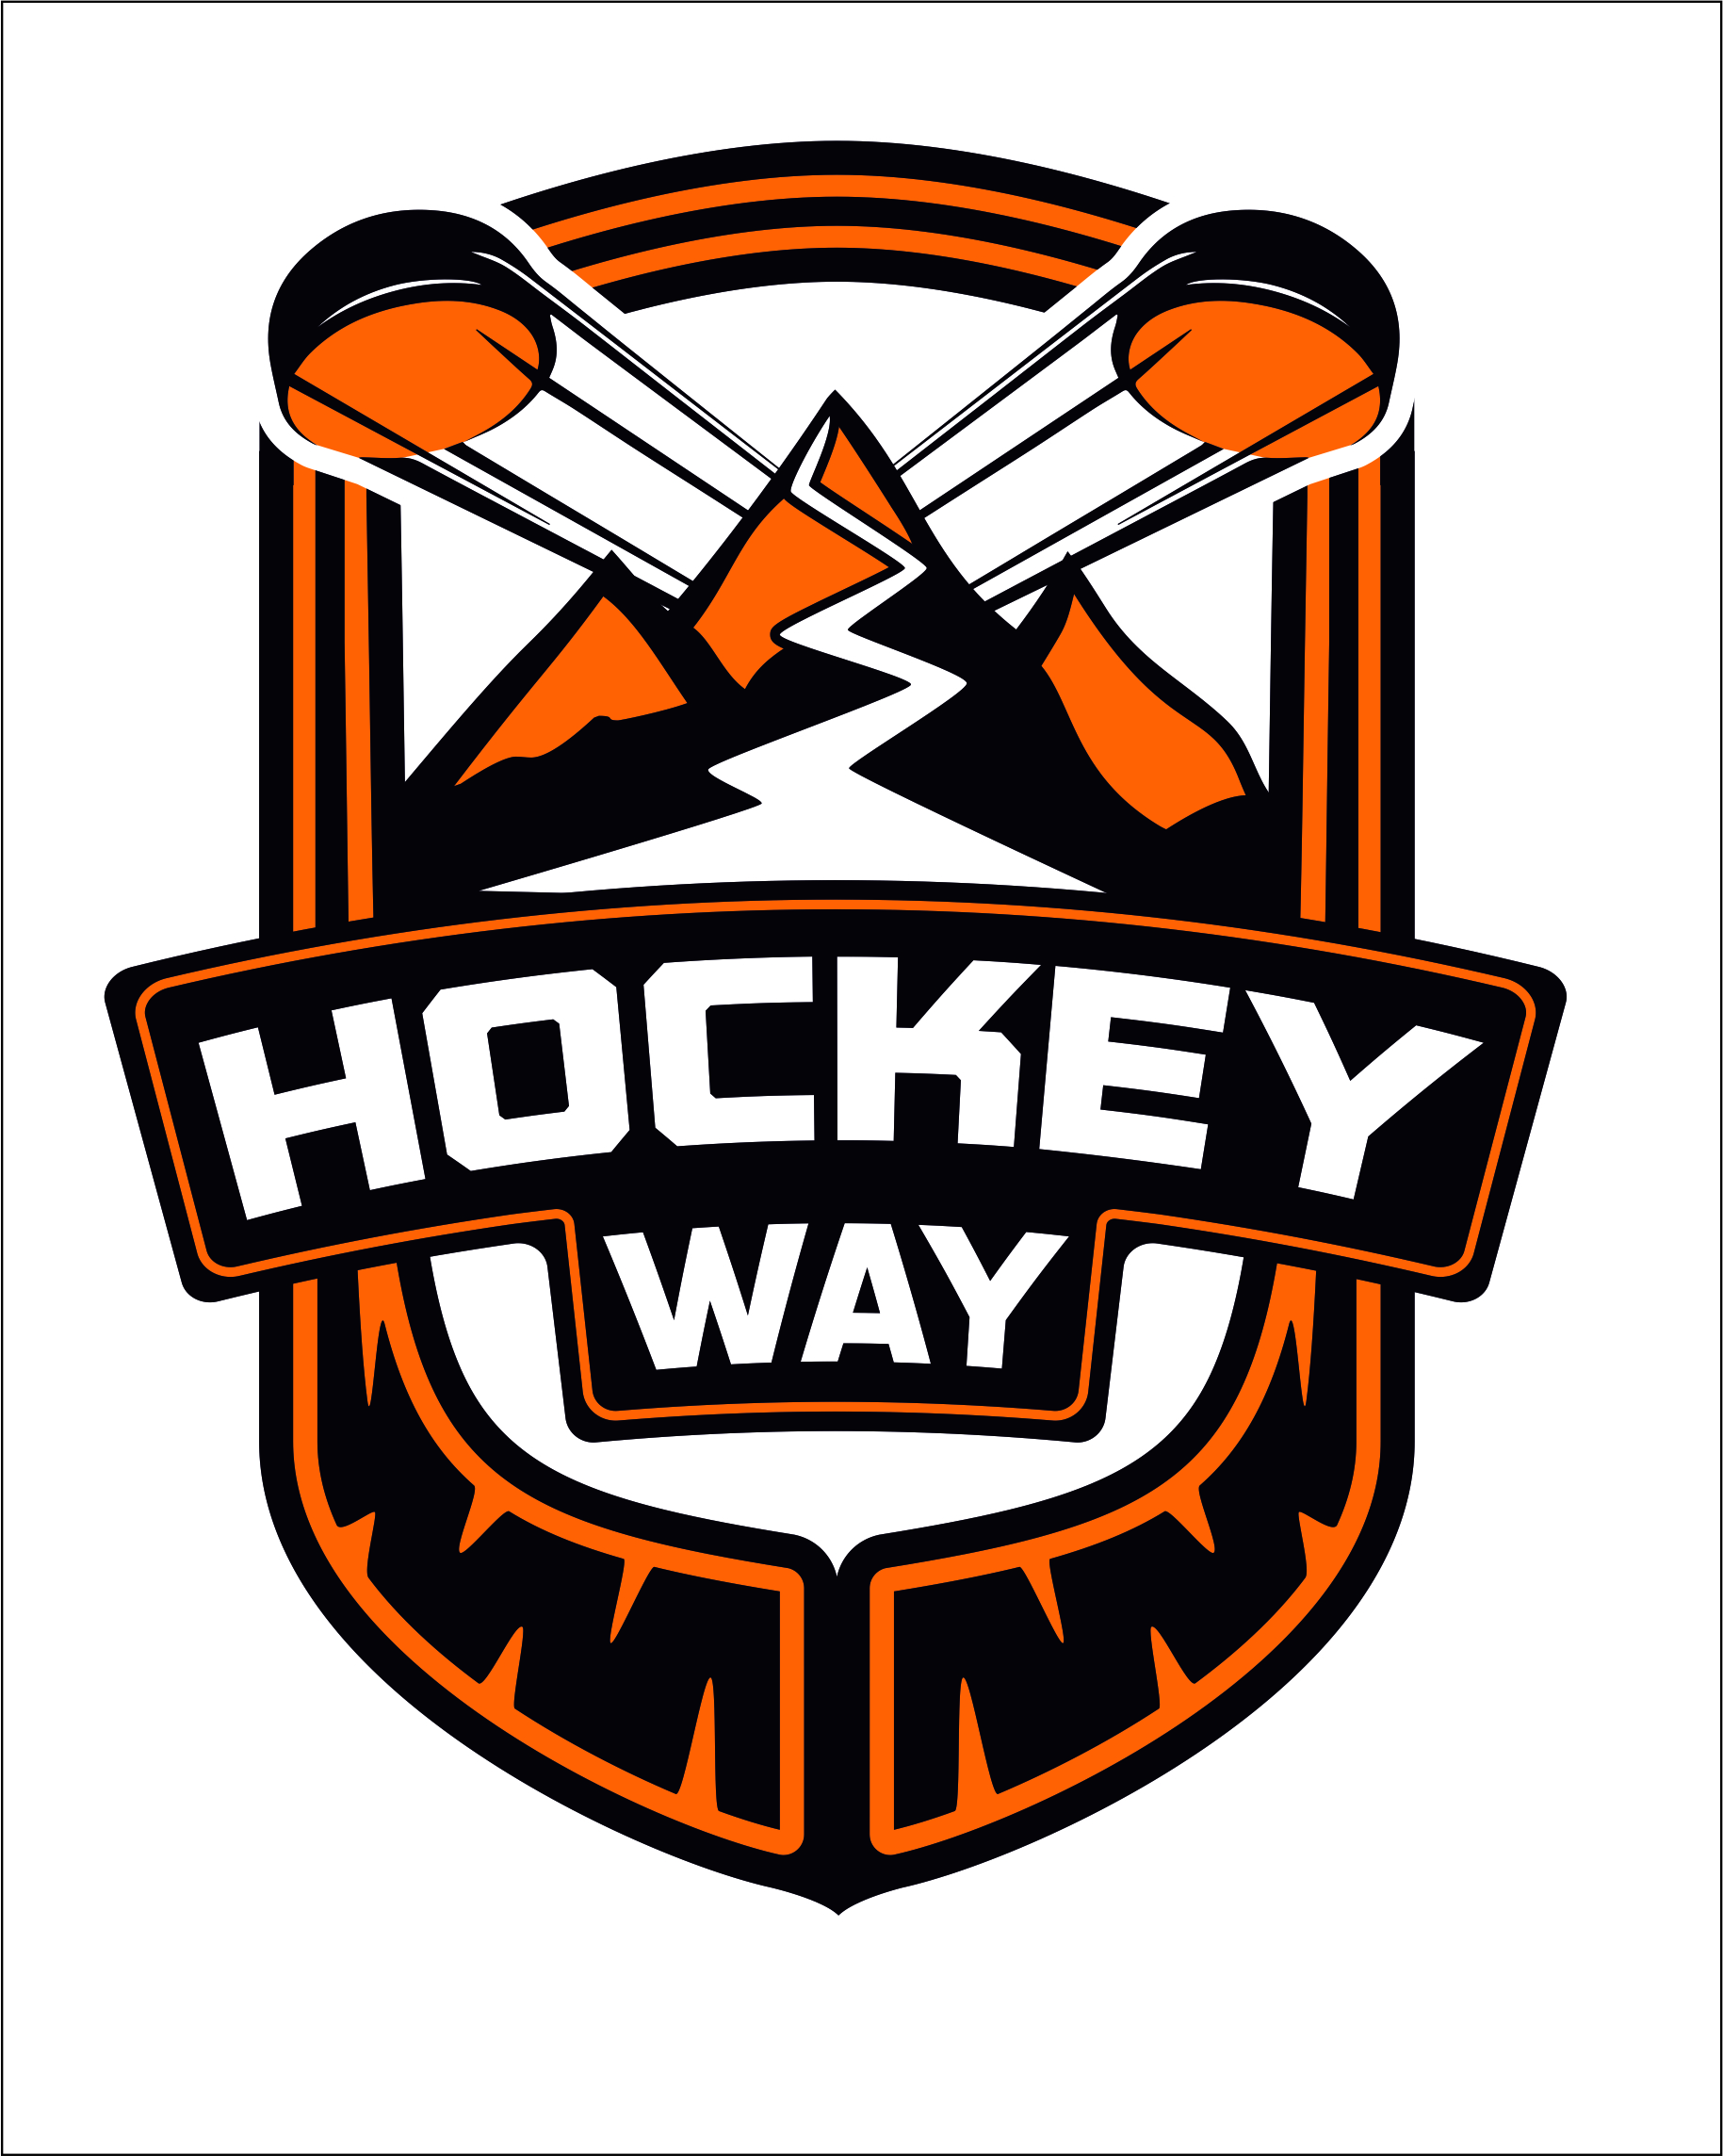 International Camp Hockey Way 2019